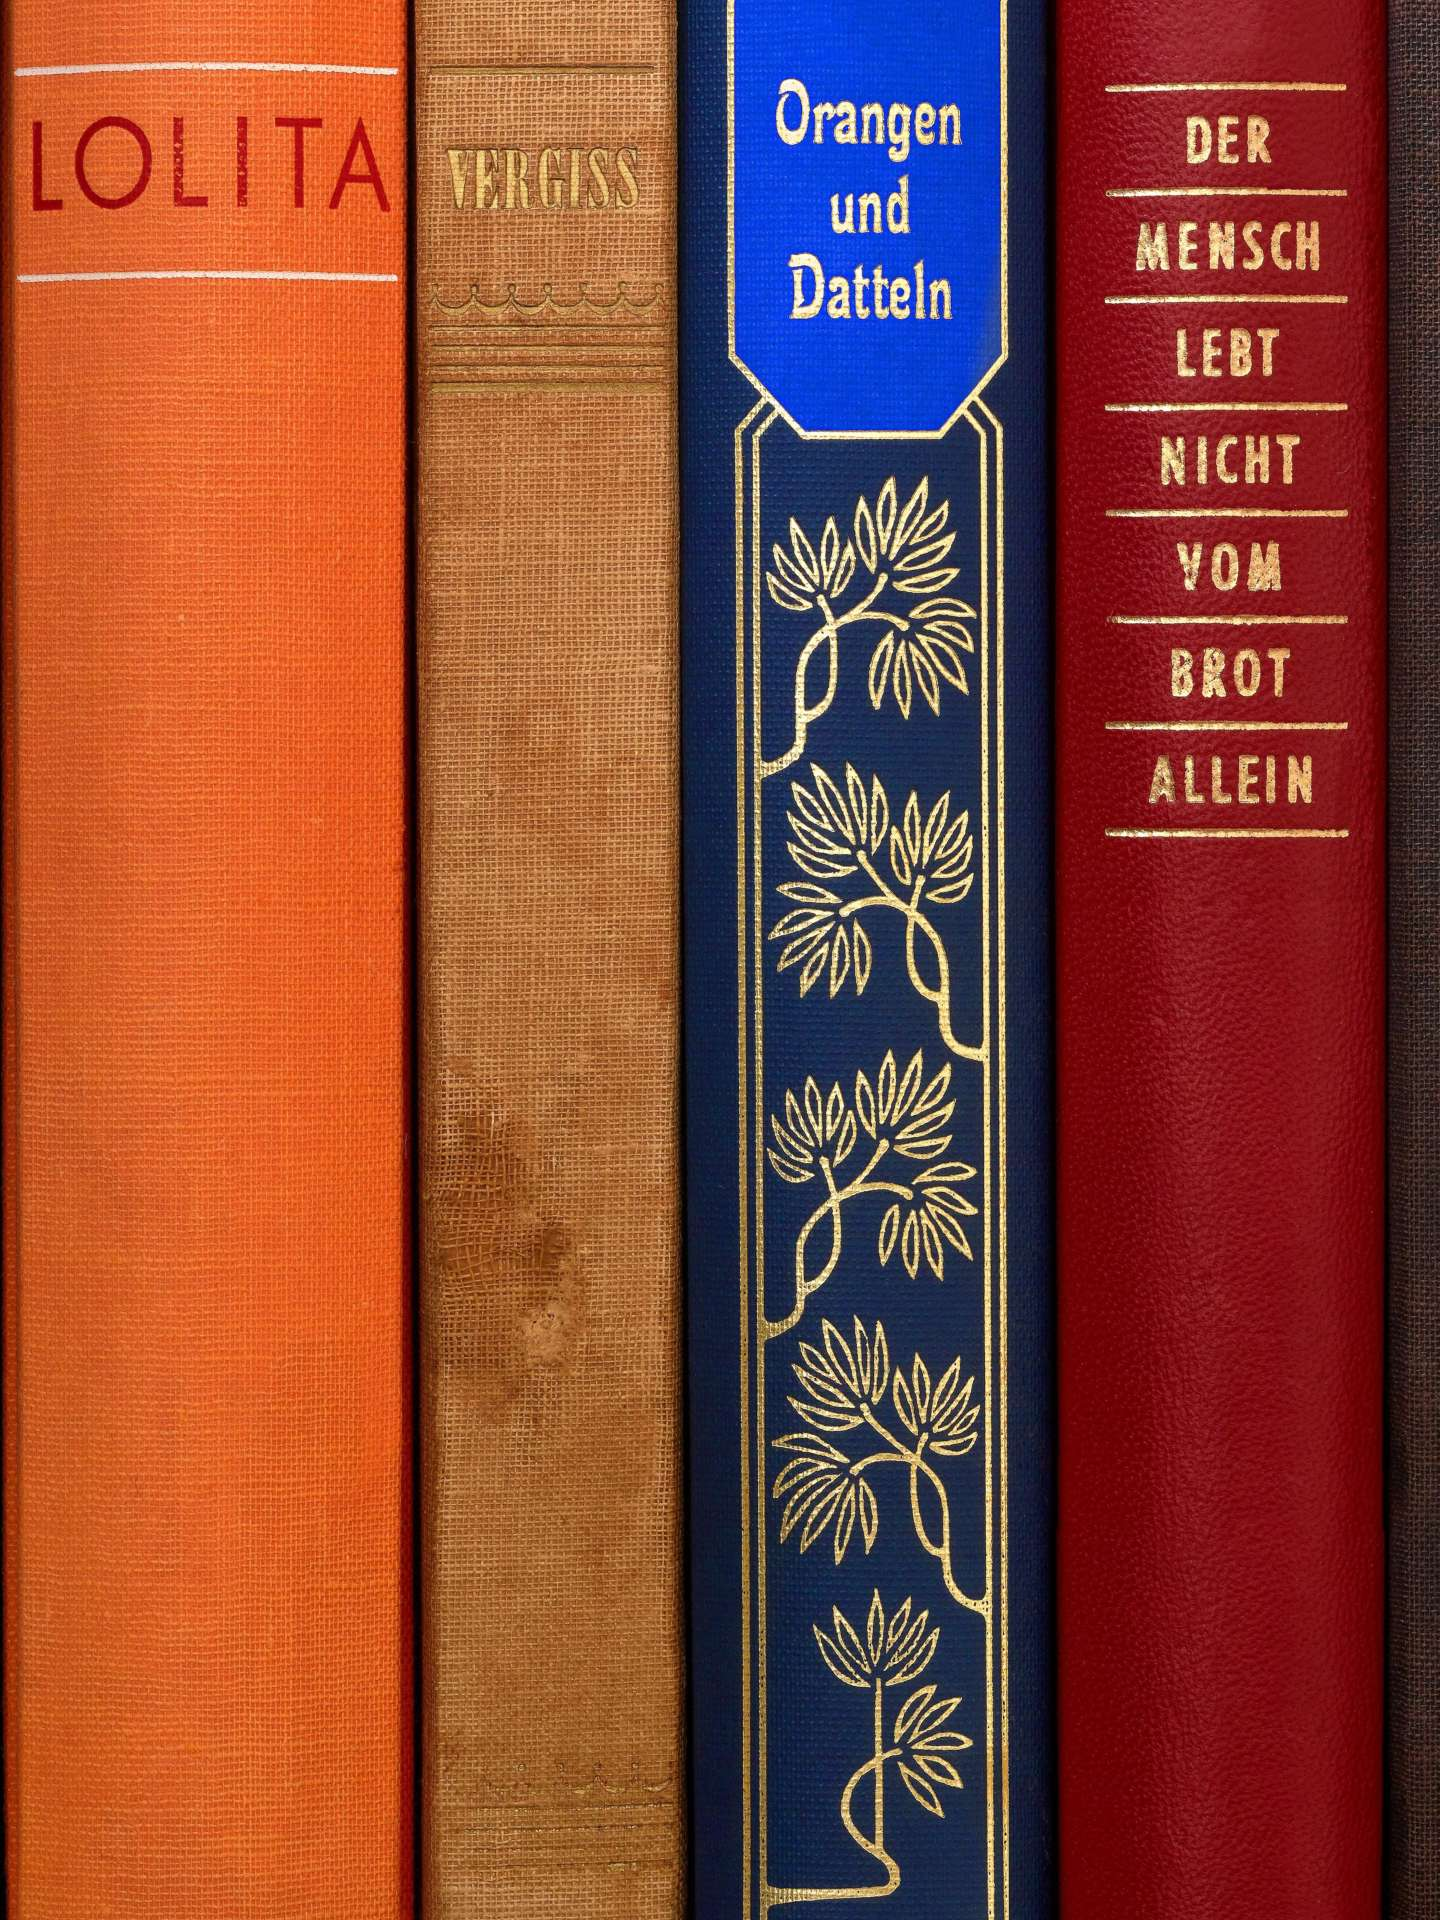 Several book spines stand side by side, on which are written Lolita, Forget, Dates and Oranges and Man does not live by bread alone in german